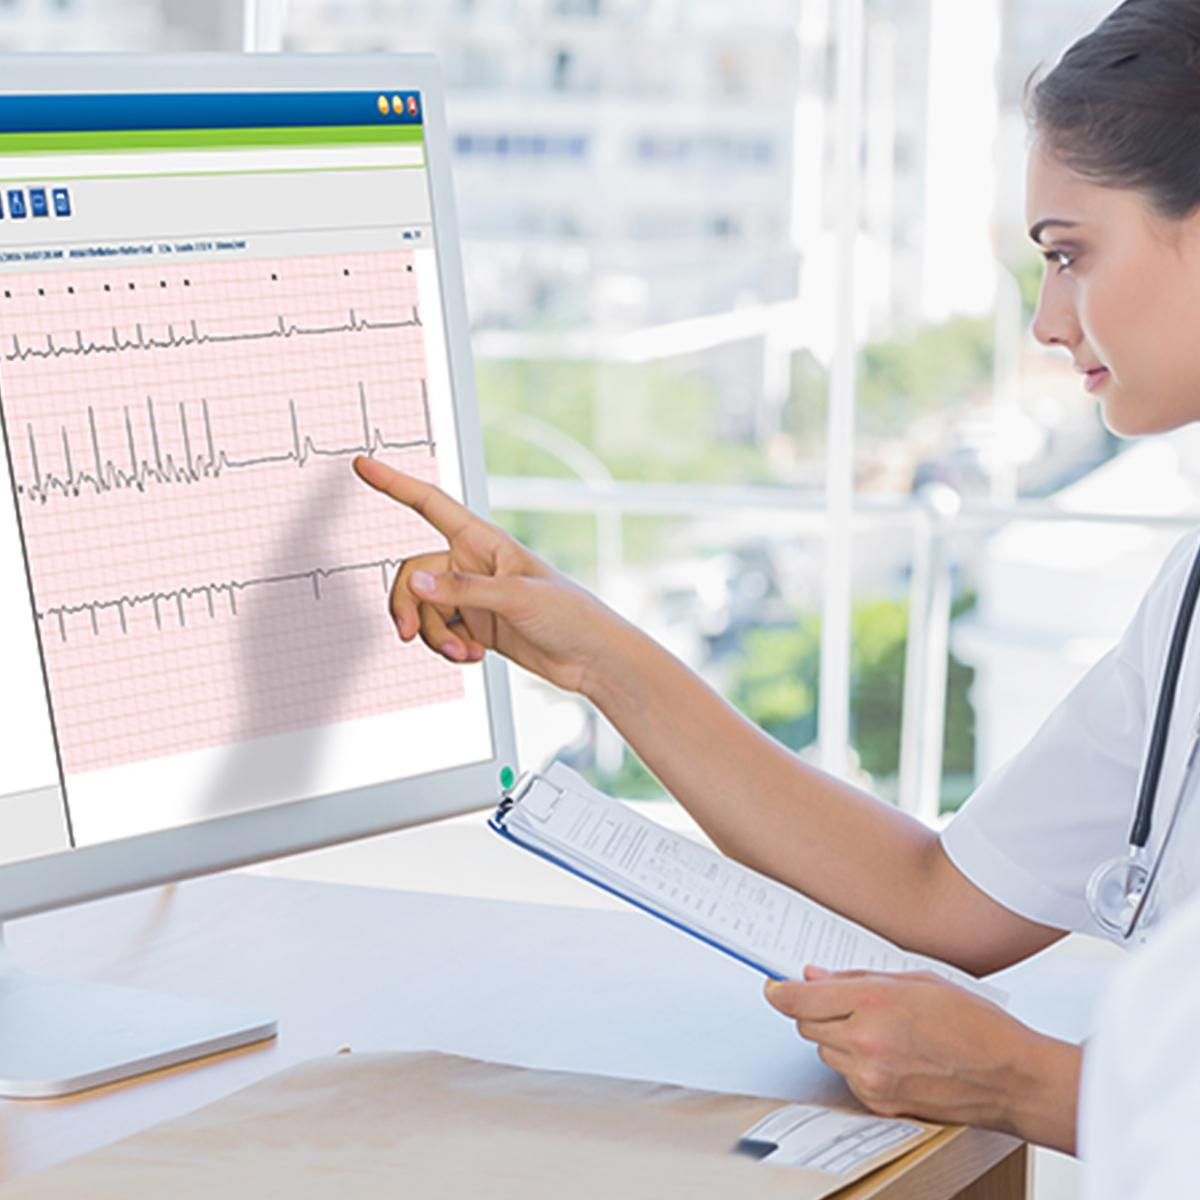 Female clinician pointing to and ECG waveform on a screen